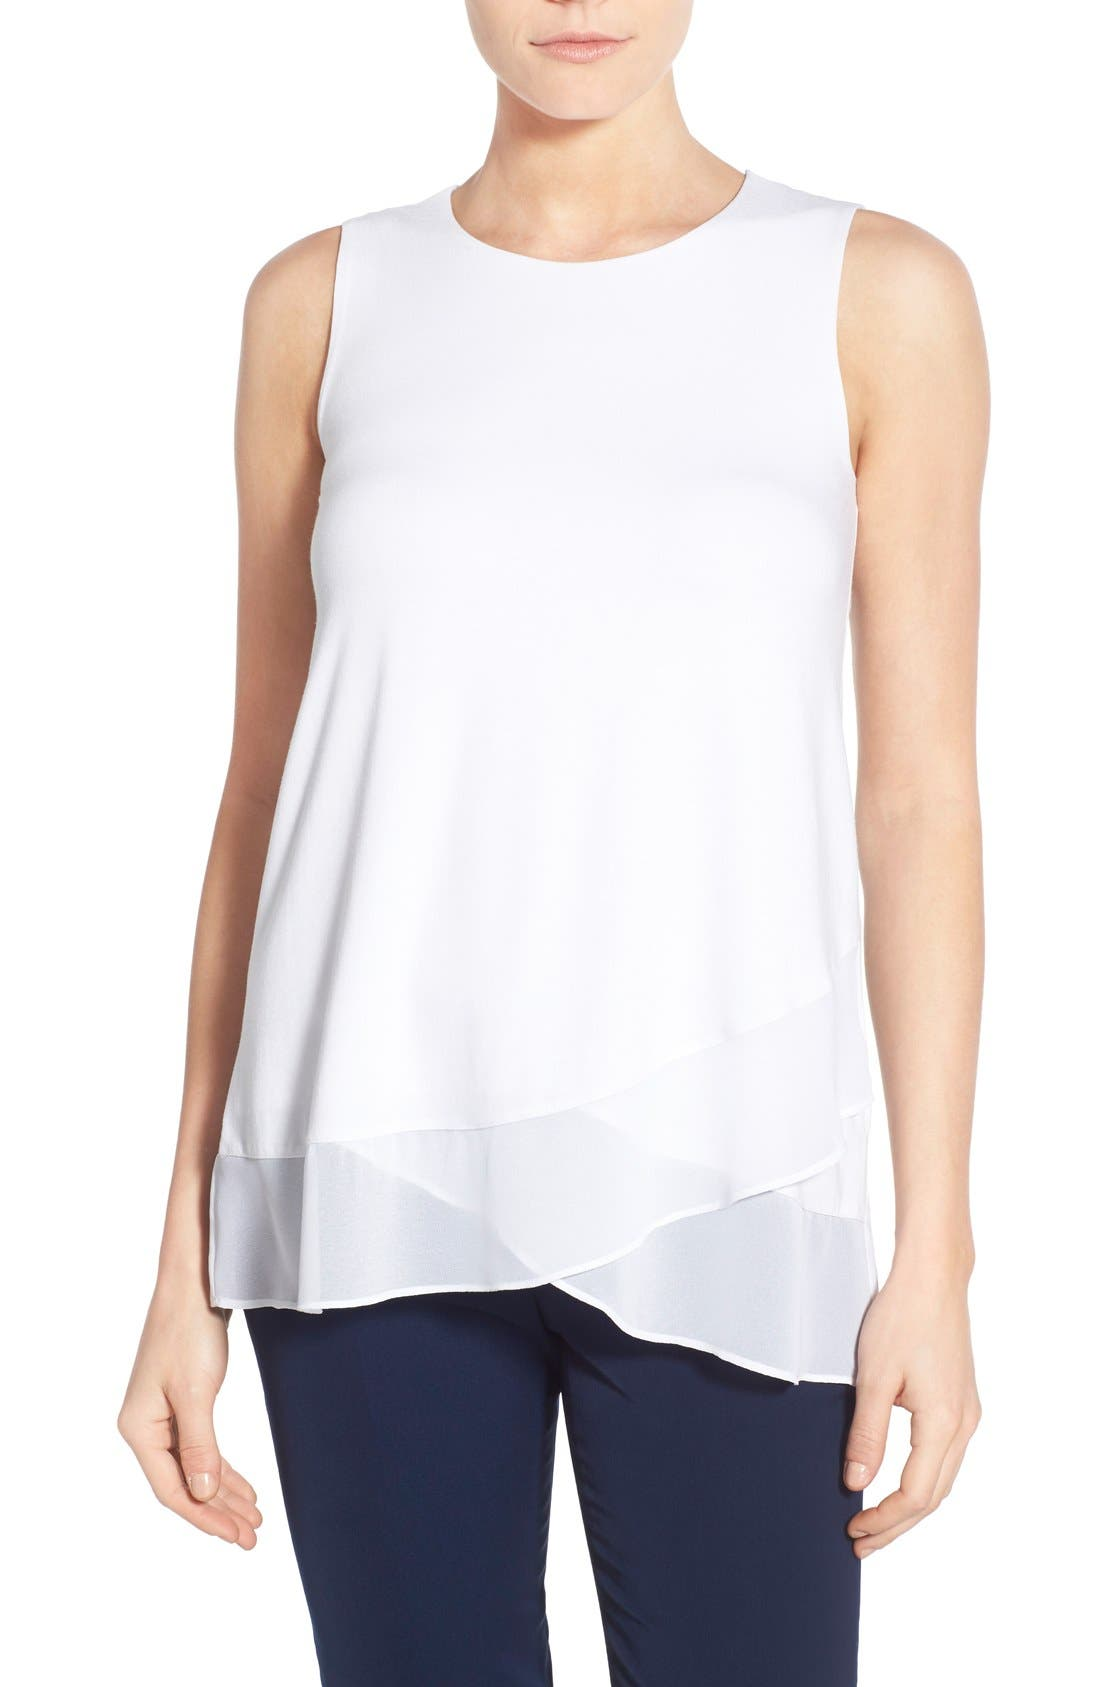 Main Image - Vince Camuto Sleeveless Top with Asymmetrical Chiffon Hem